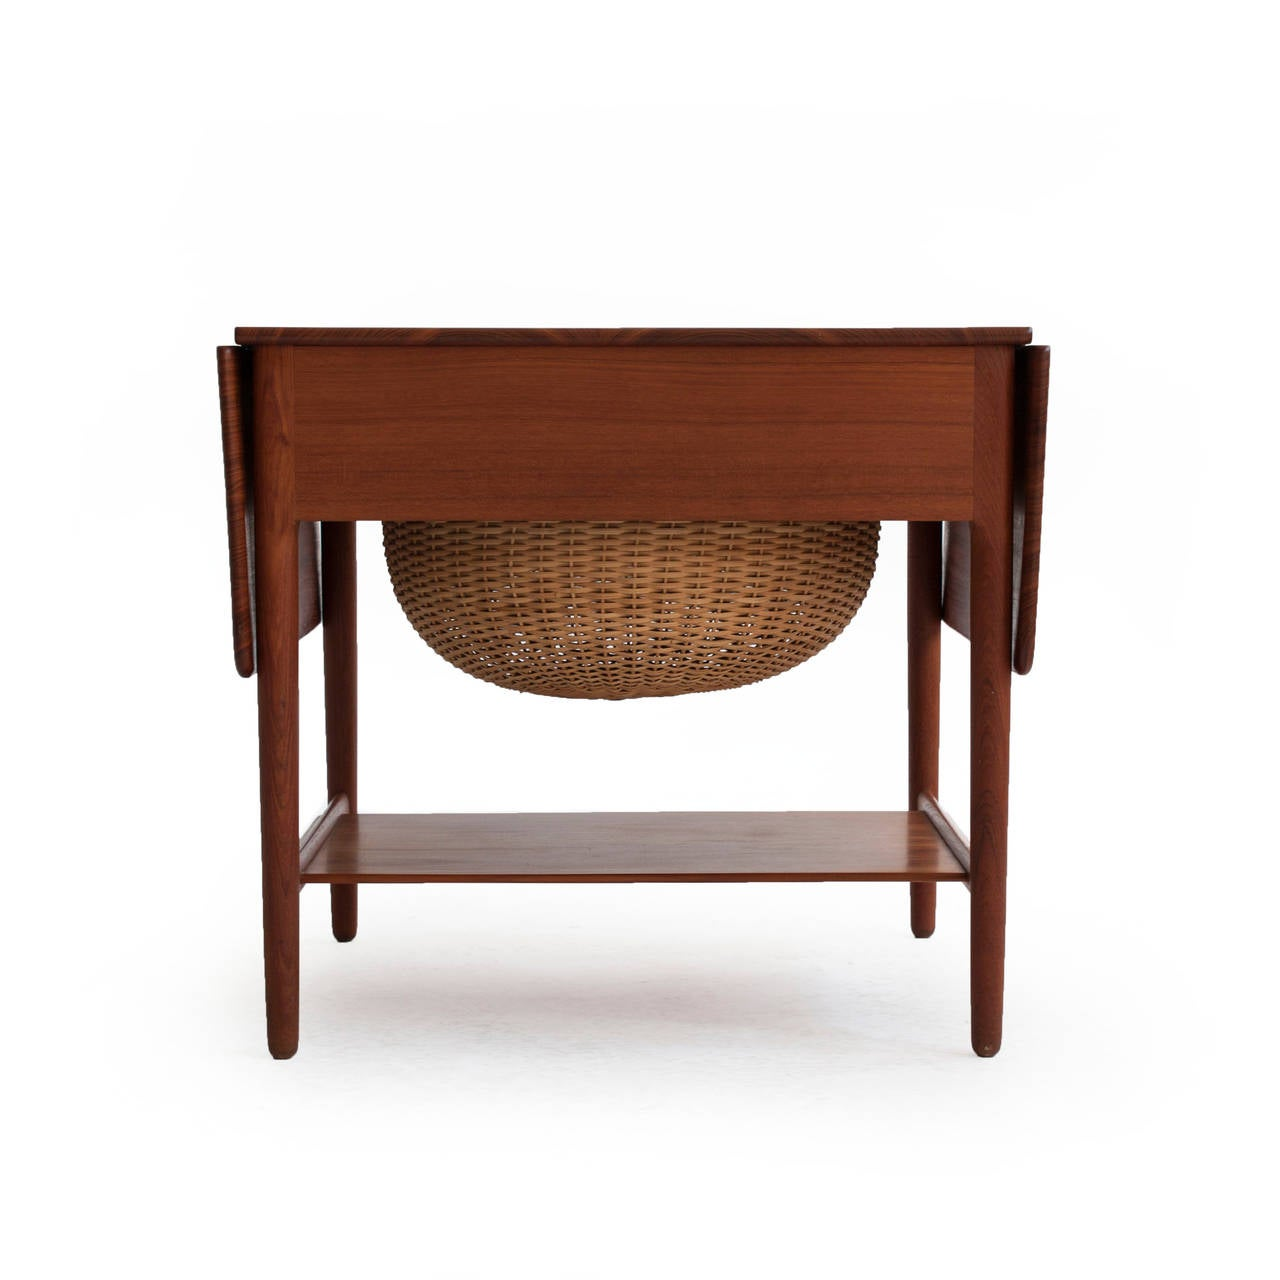 Hans j wegner at 33 table for sale at 1stdibs - Archives departementales 33 tables decennales ...